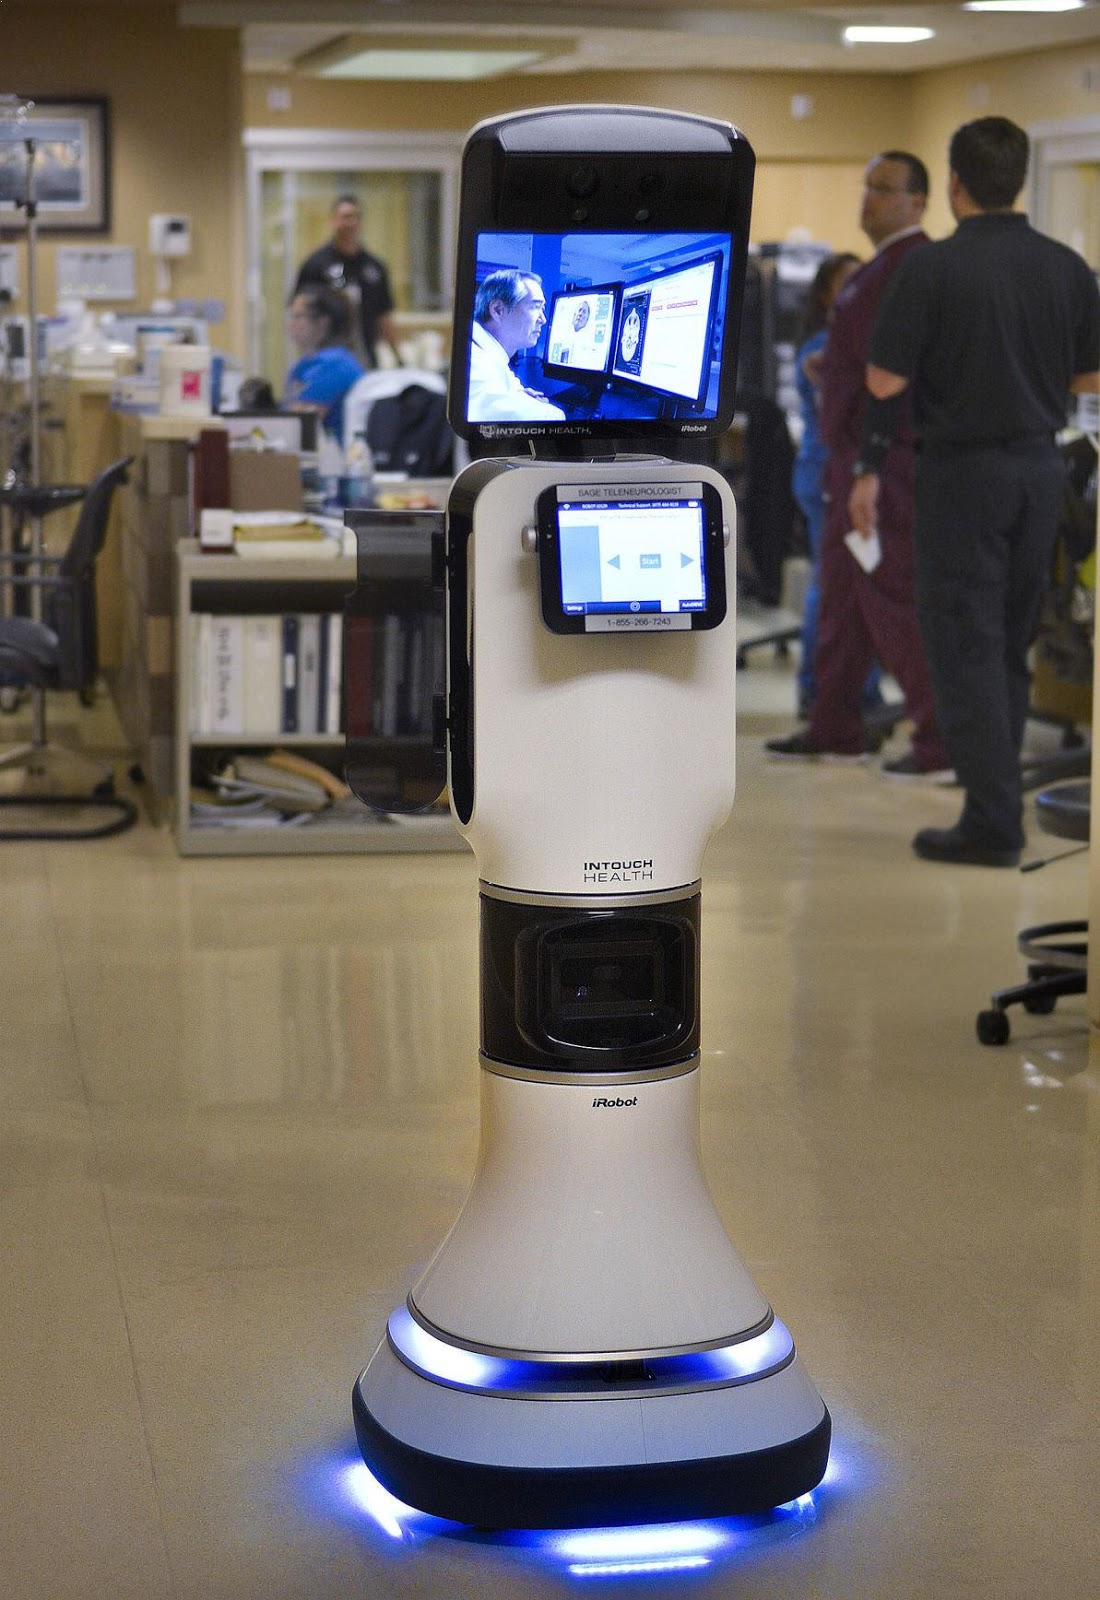 Use of Robots in Medical Science Today and the Future 3